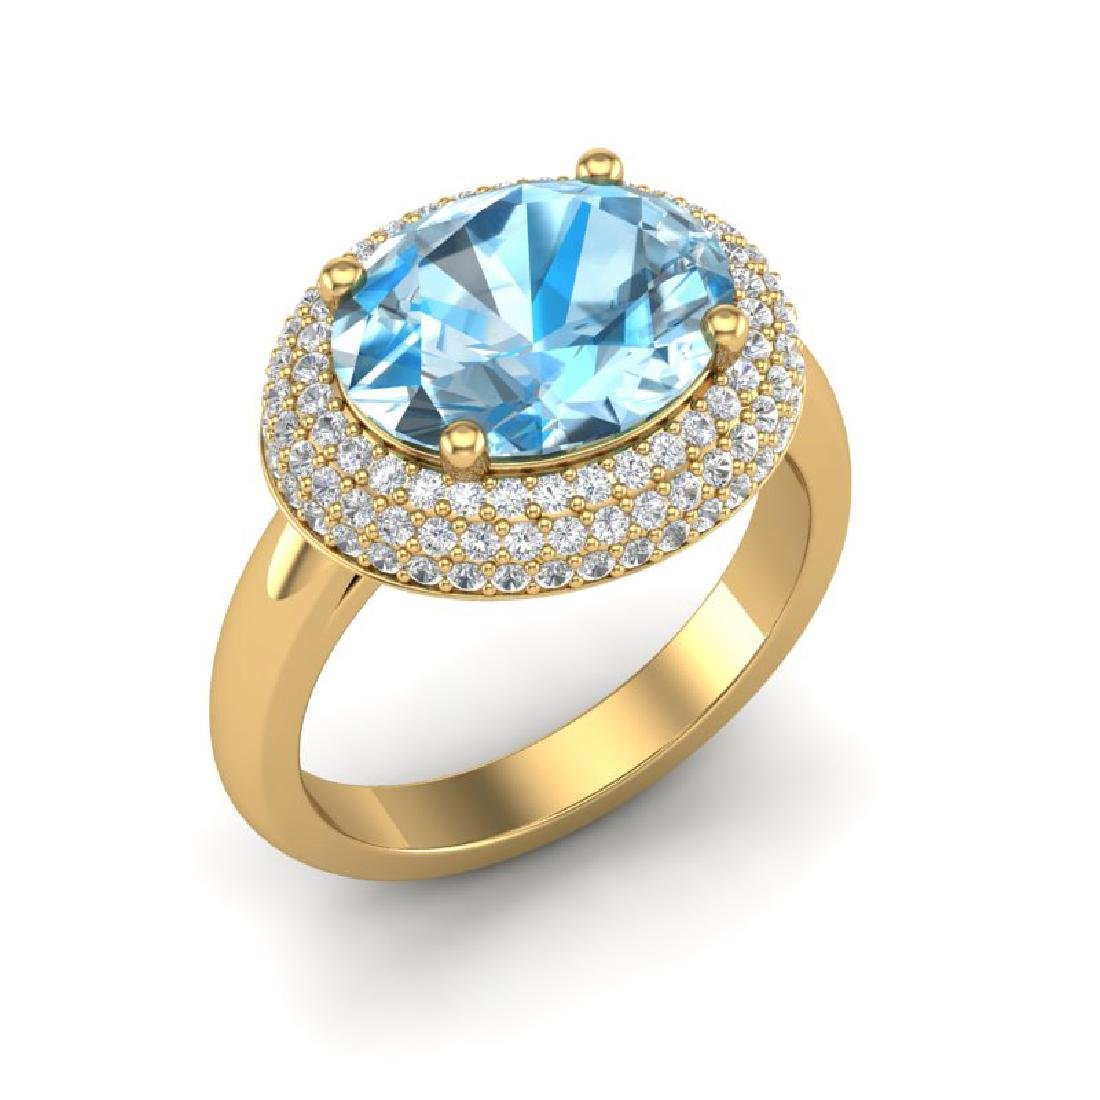 5 CTW Sky Blue Topaz & Micro Pave VS/SI Diamond